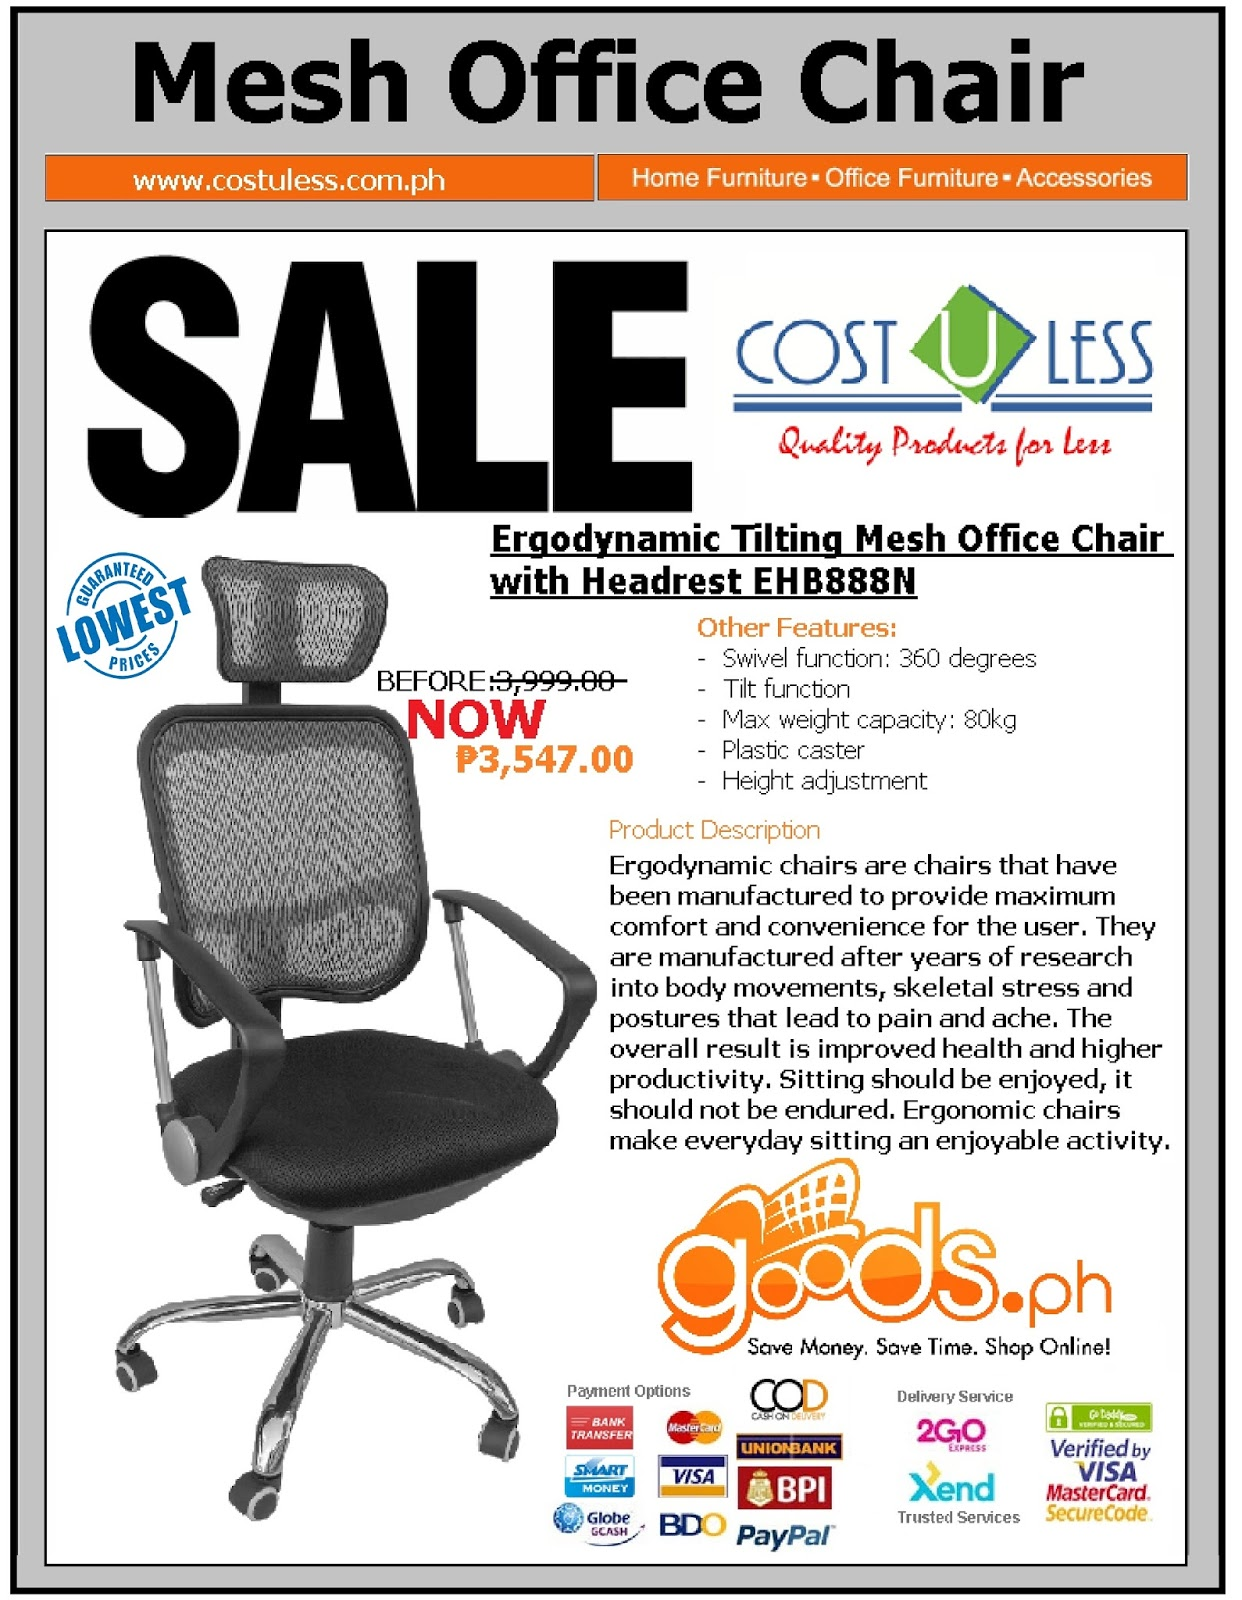 Cost u less office furniture manilafurniture supplier for Office furniture at home goods